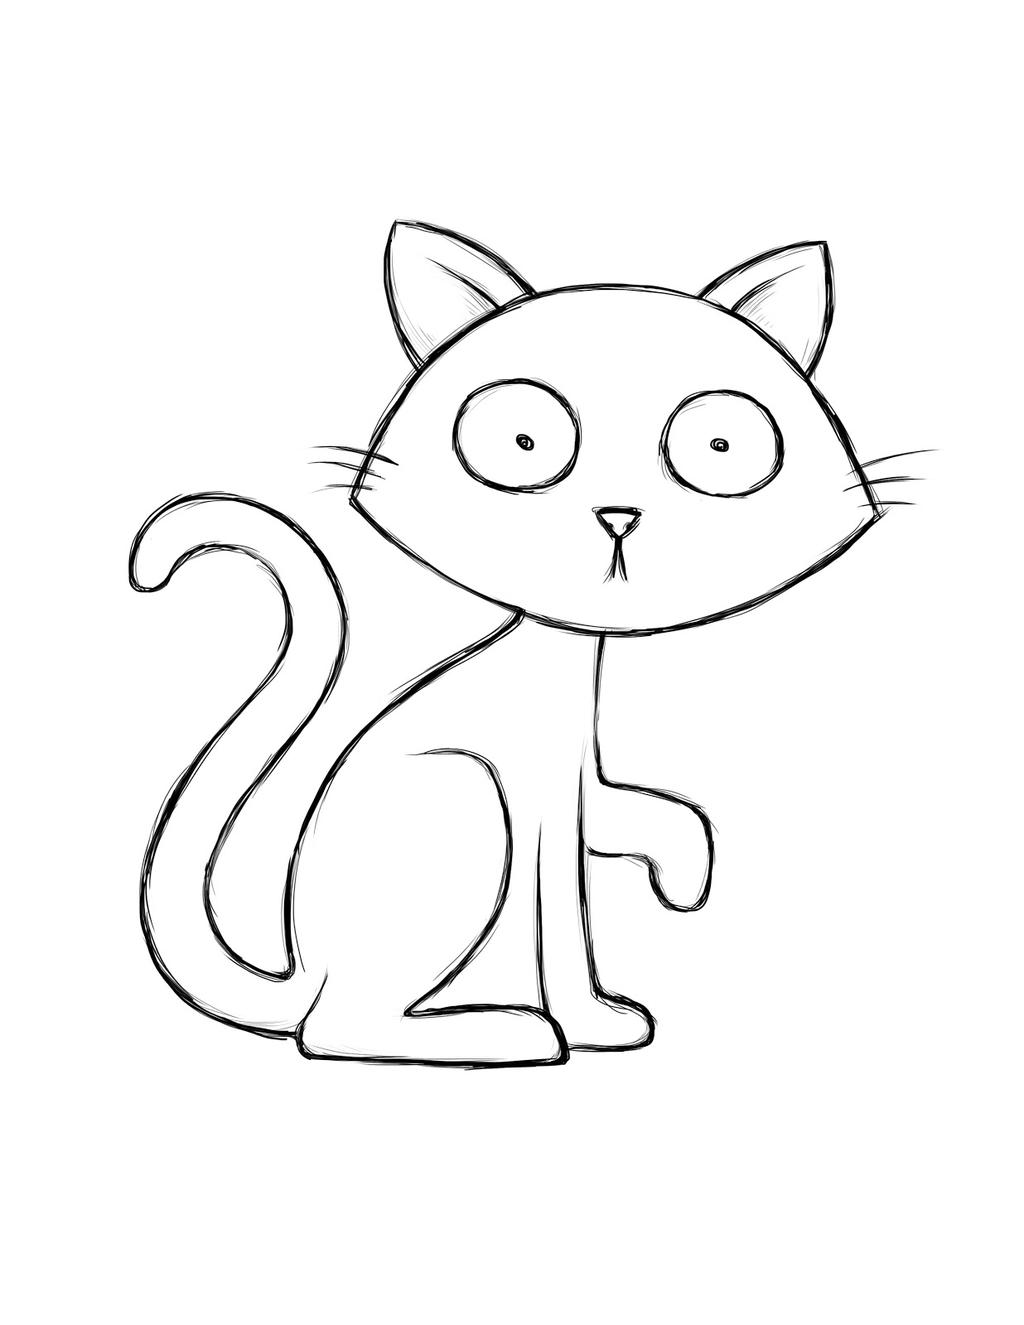 Free Black Cat Coloring Pages Halloween Animal printable